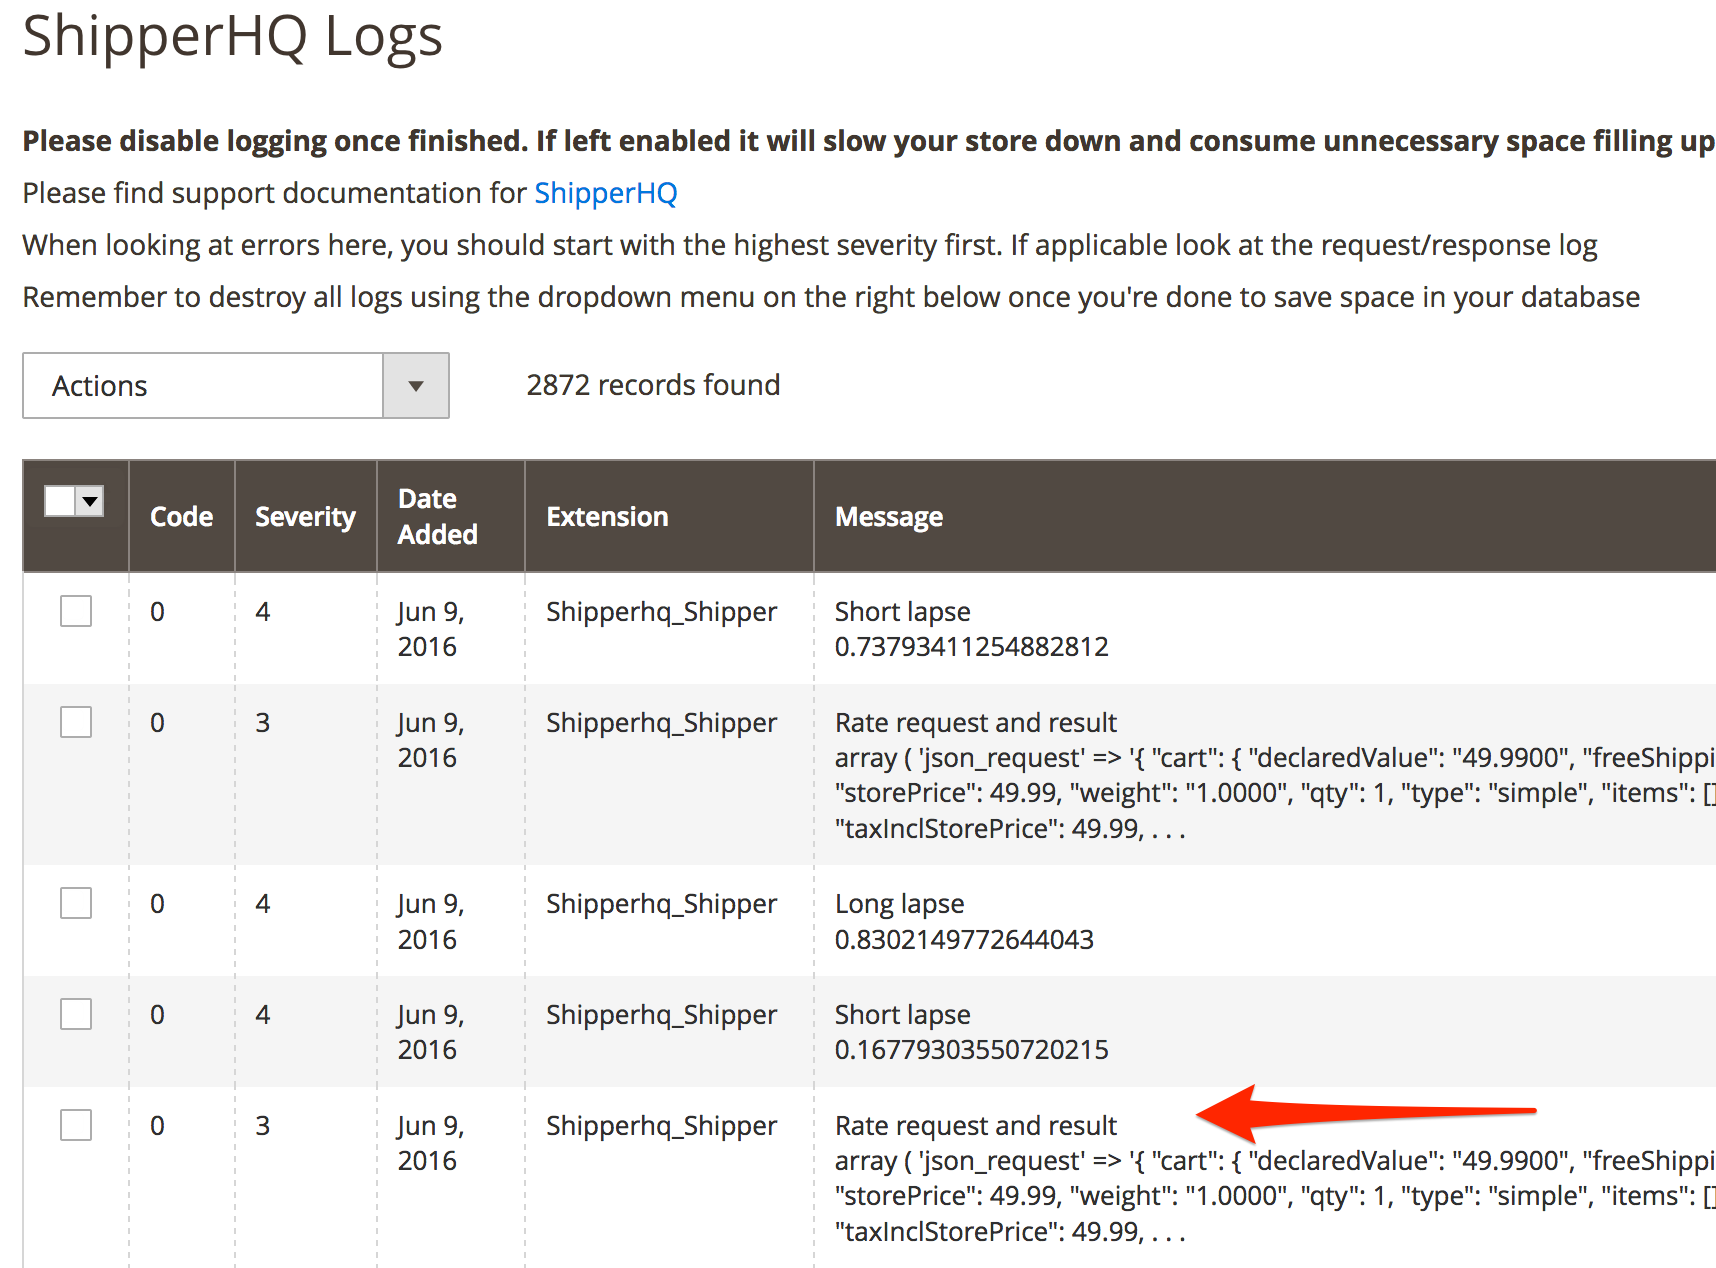 ShipperHQ_Logs___Other_Settings___System___Magento_Admin